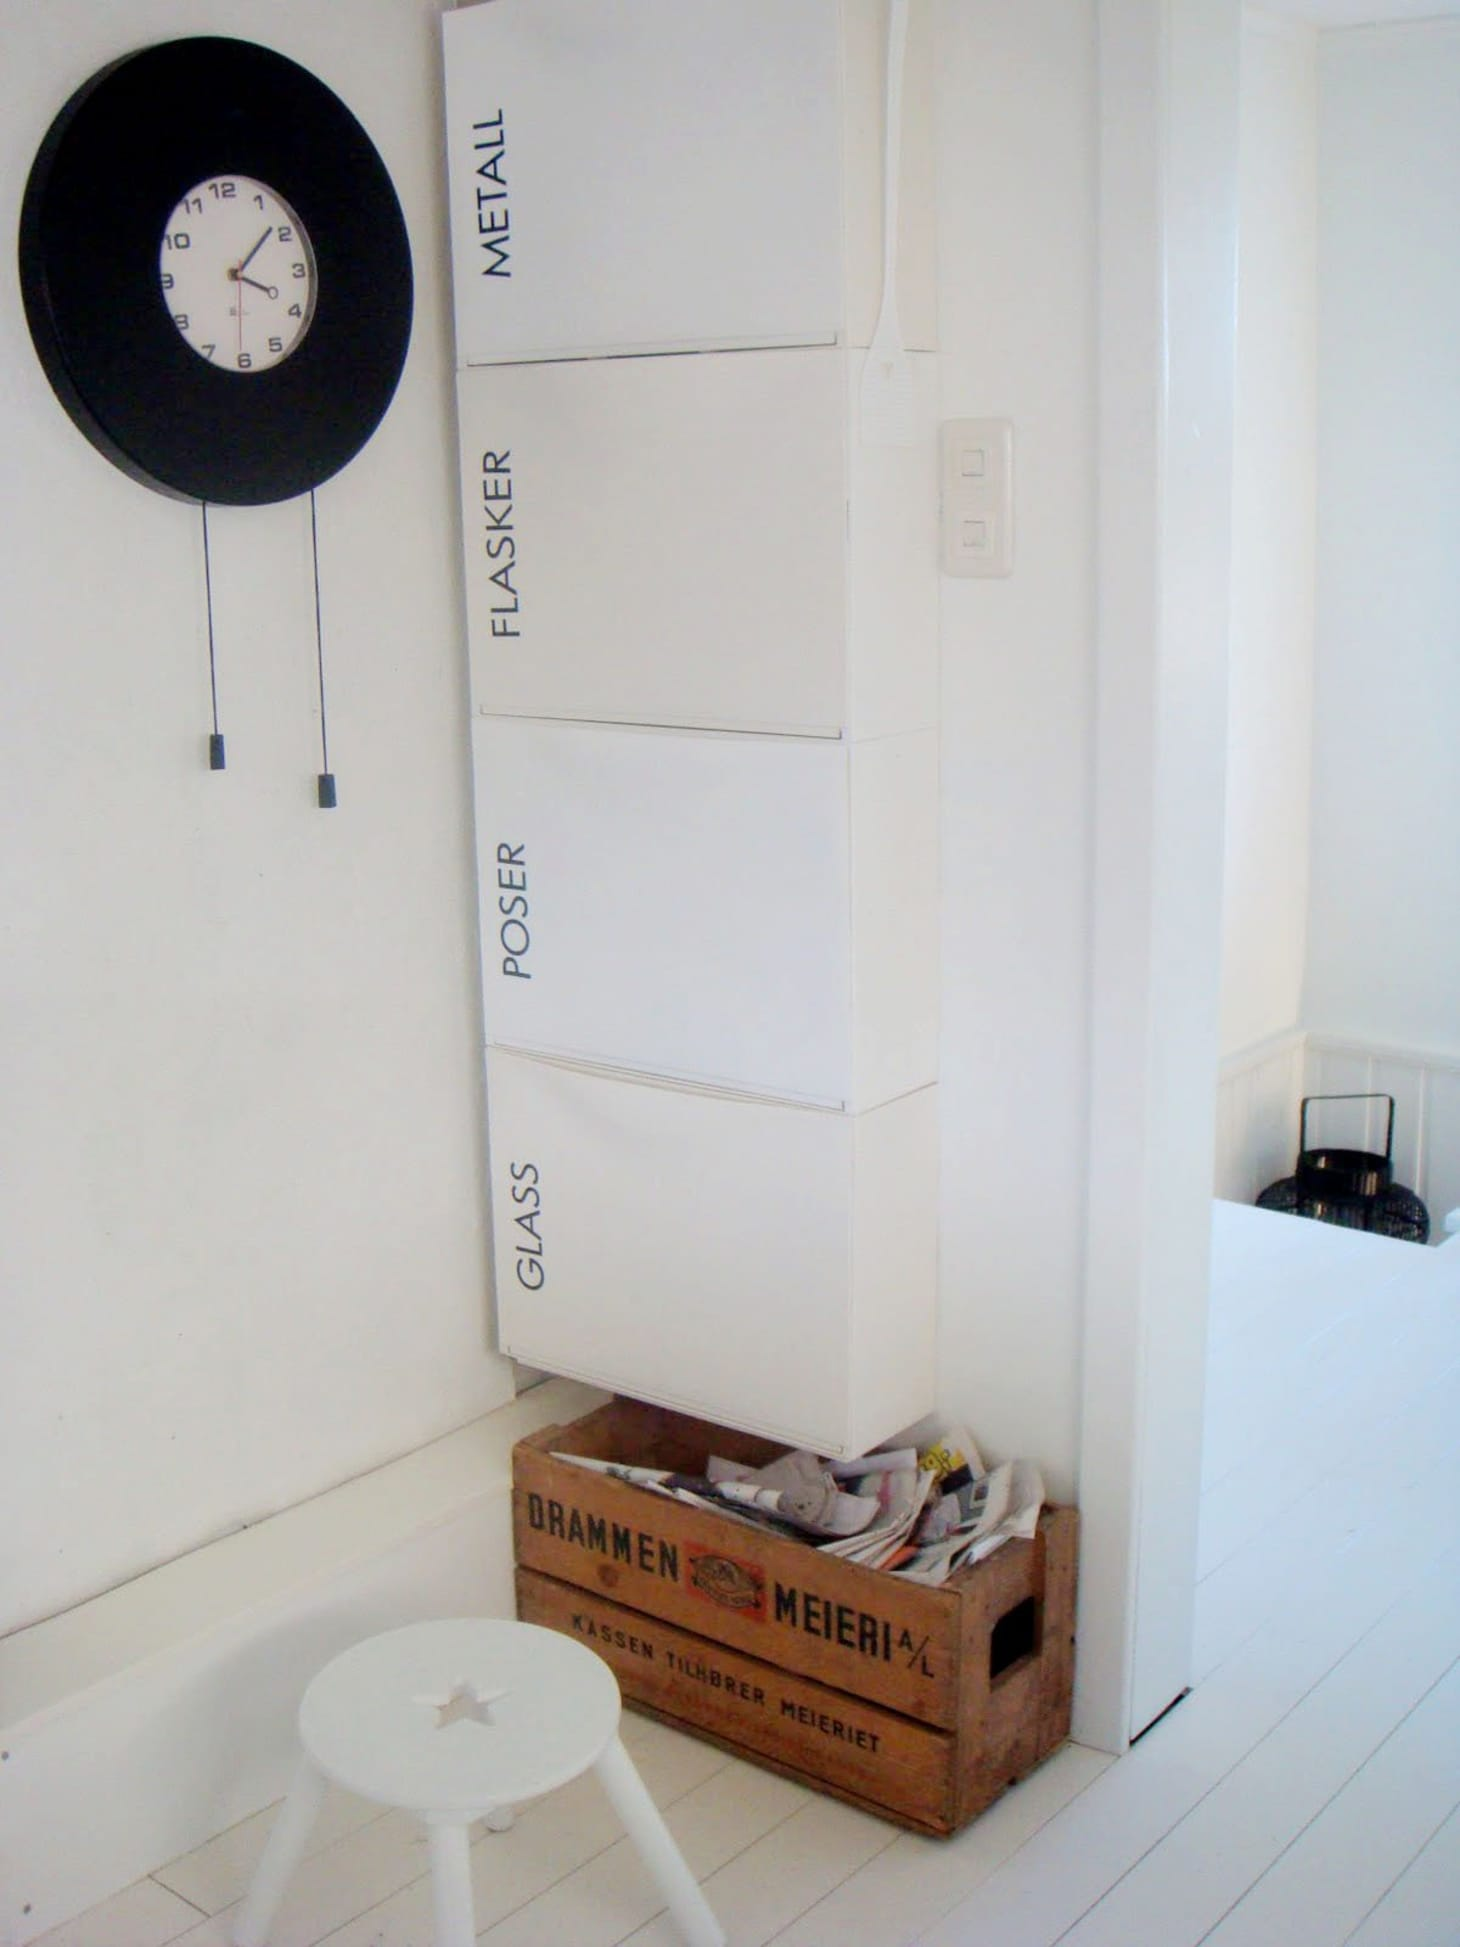 Ikea Schuhregal Trones.How To Use Ikea Trones Storage Boxes All Over The House